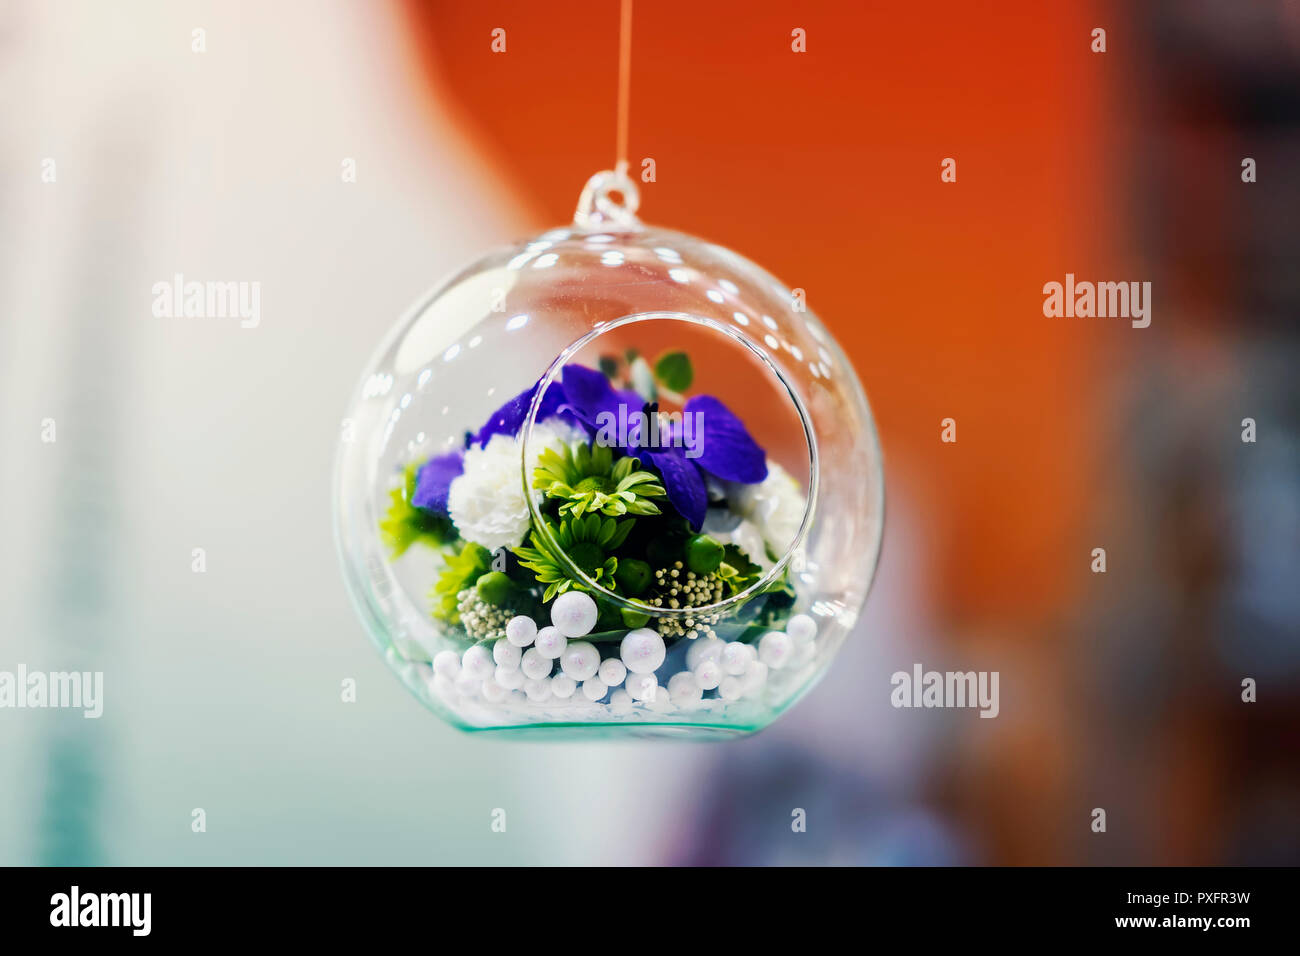 Hanging glass ball, bubble with colorful flowers inside, bright white and red background, decoration, stylish floristry Stock Photo